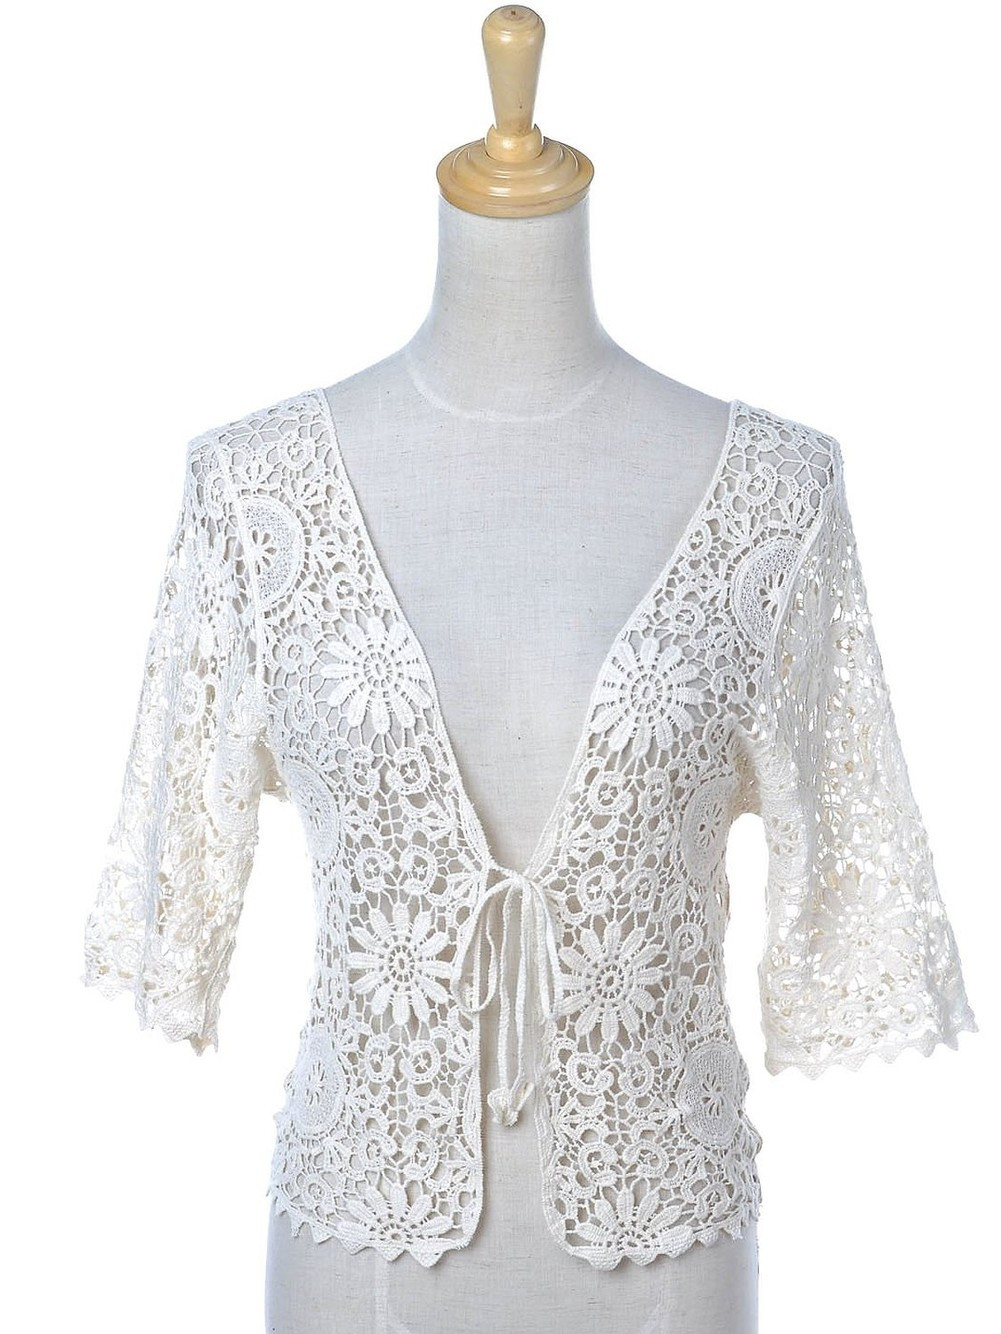 Awesome F White Crochet Sweater Cardigan Sweater Jeans and Boots White Crochet Cardigan Of Lovely 47 Ideas White Crochet Cardigan